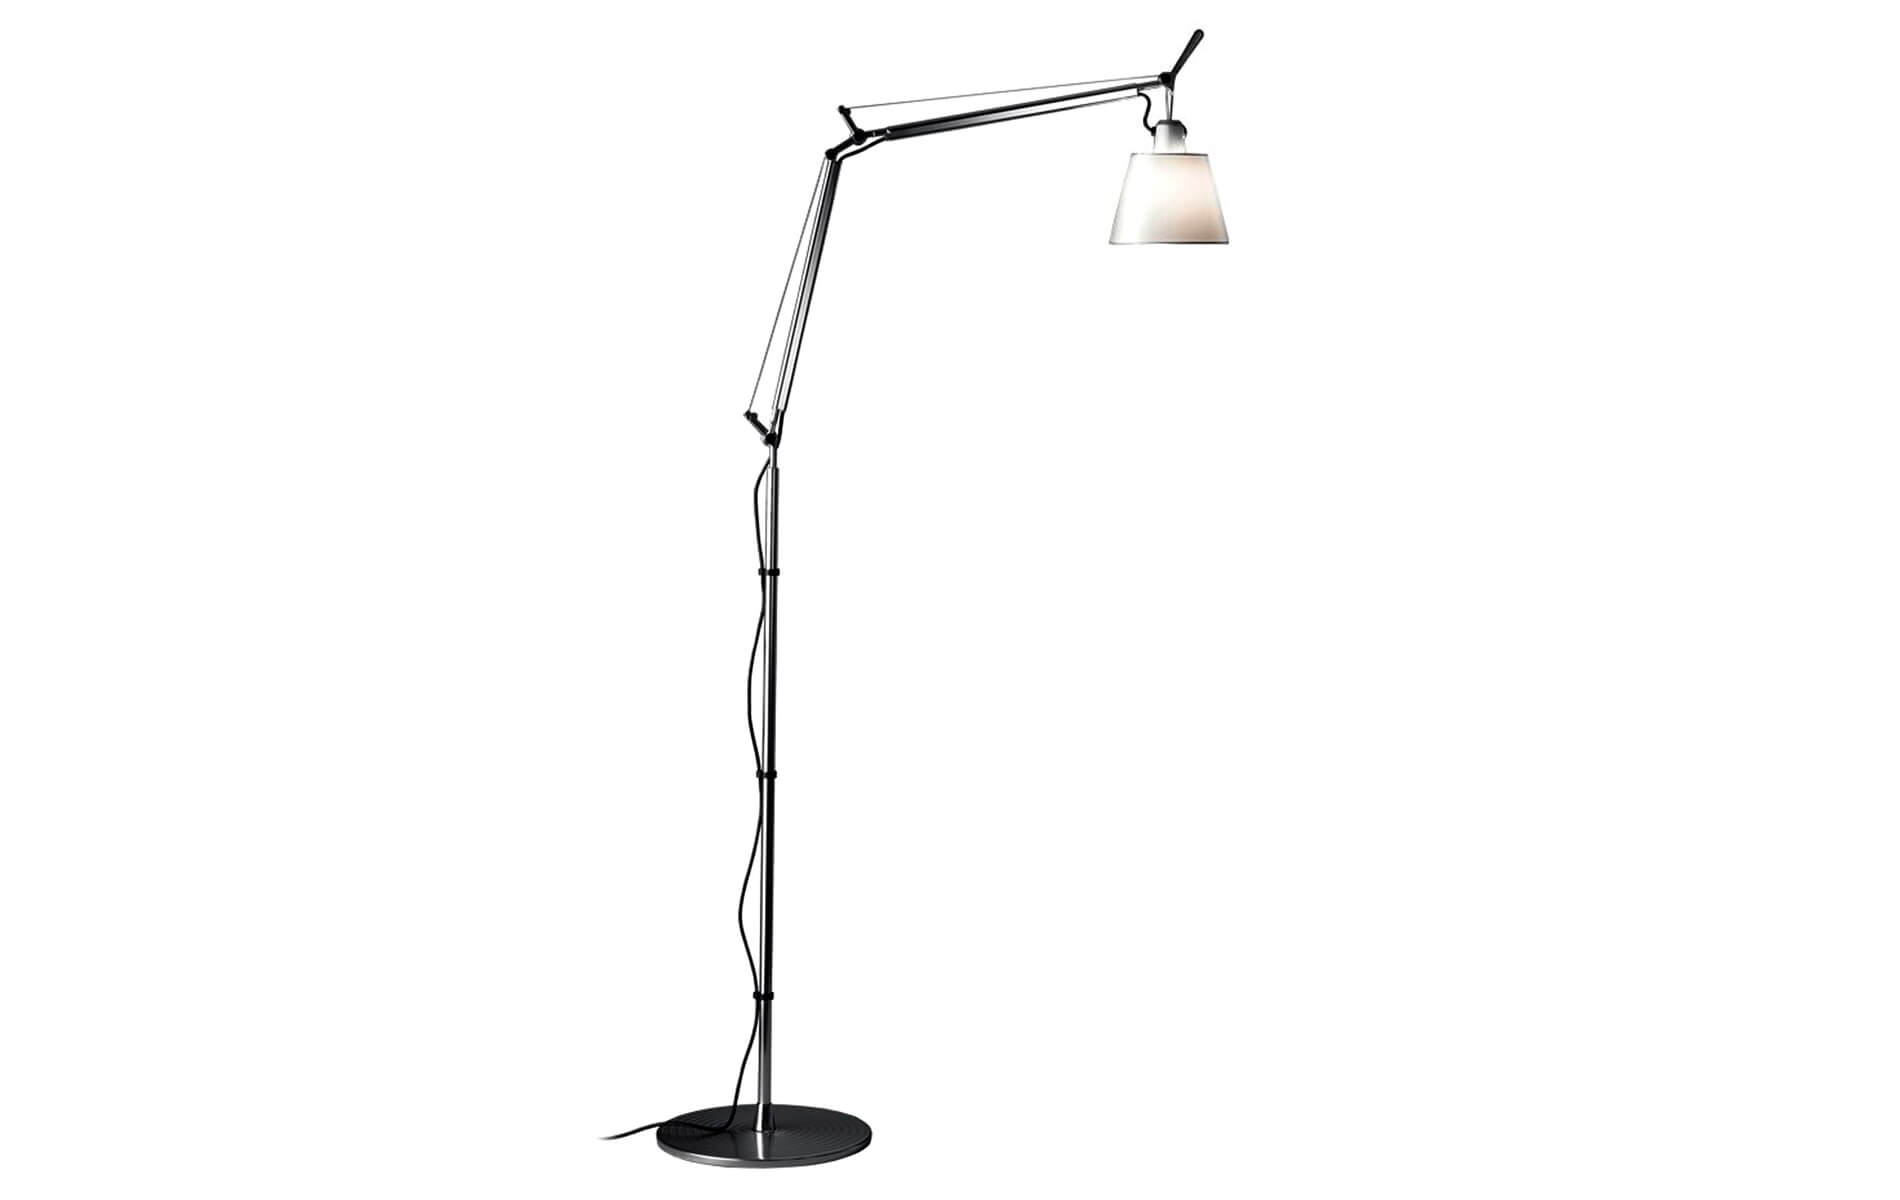 More information of Artemide TOLOME BASCULANTE FLOOR lamp